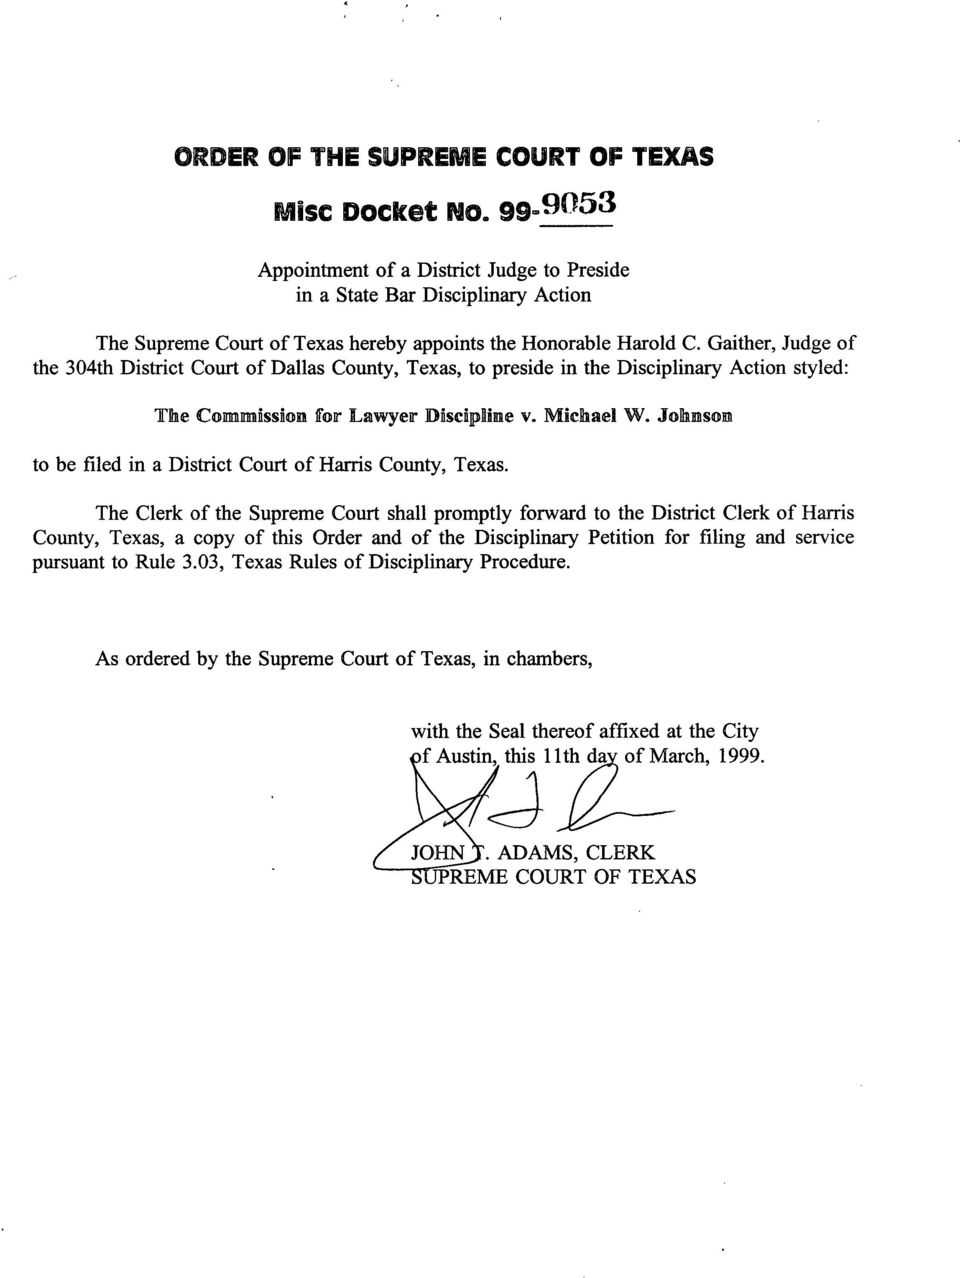 Gaither, Judge of the 304th District Court of Dallas County, Texas, to preside in the Disciplinary Action styled: The C nnnnnssi aa for Lawyer MscIlpIlgn v. Michael W.